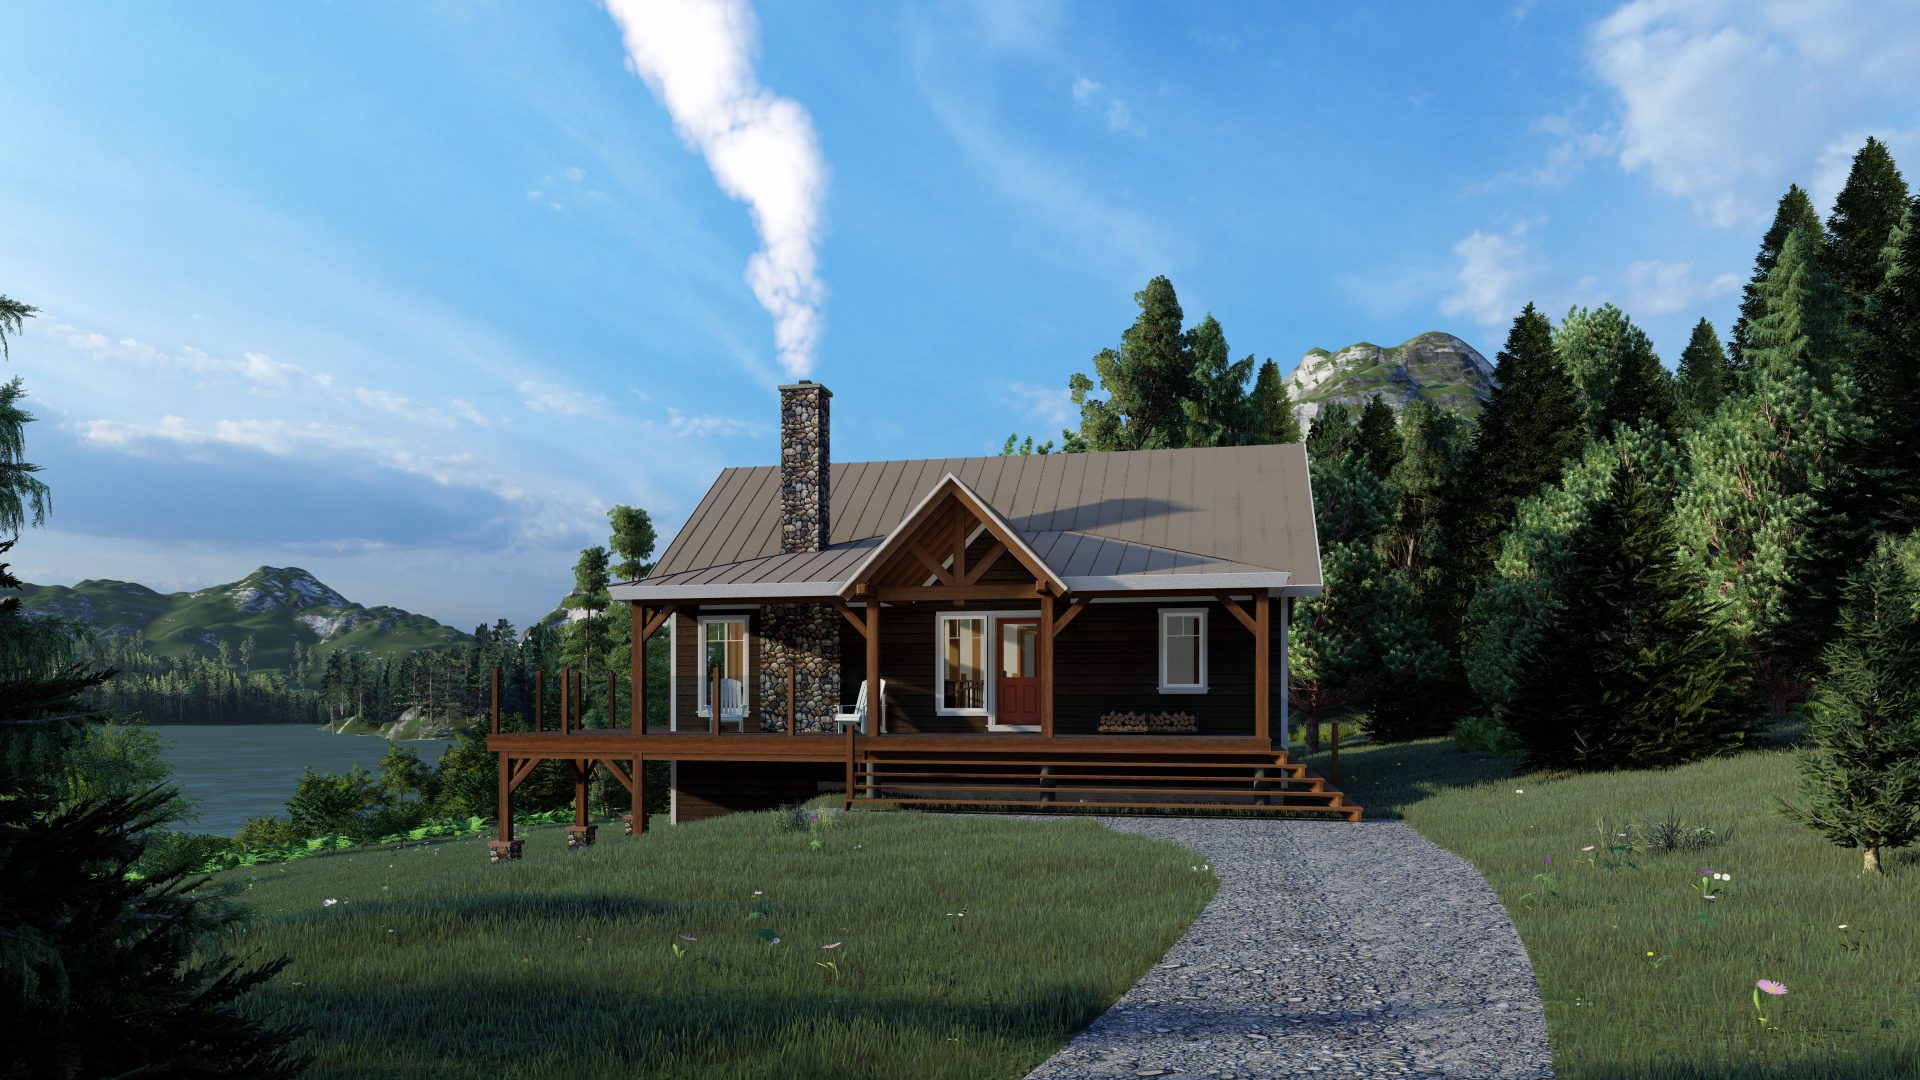 Timber Frame Open Concept House Plans   The Rouge   Normerica   Exterior, Front, Summer